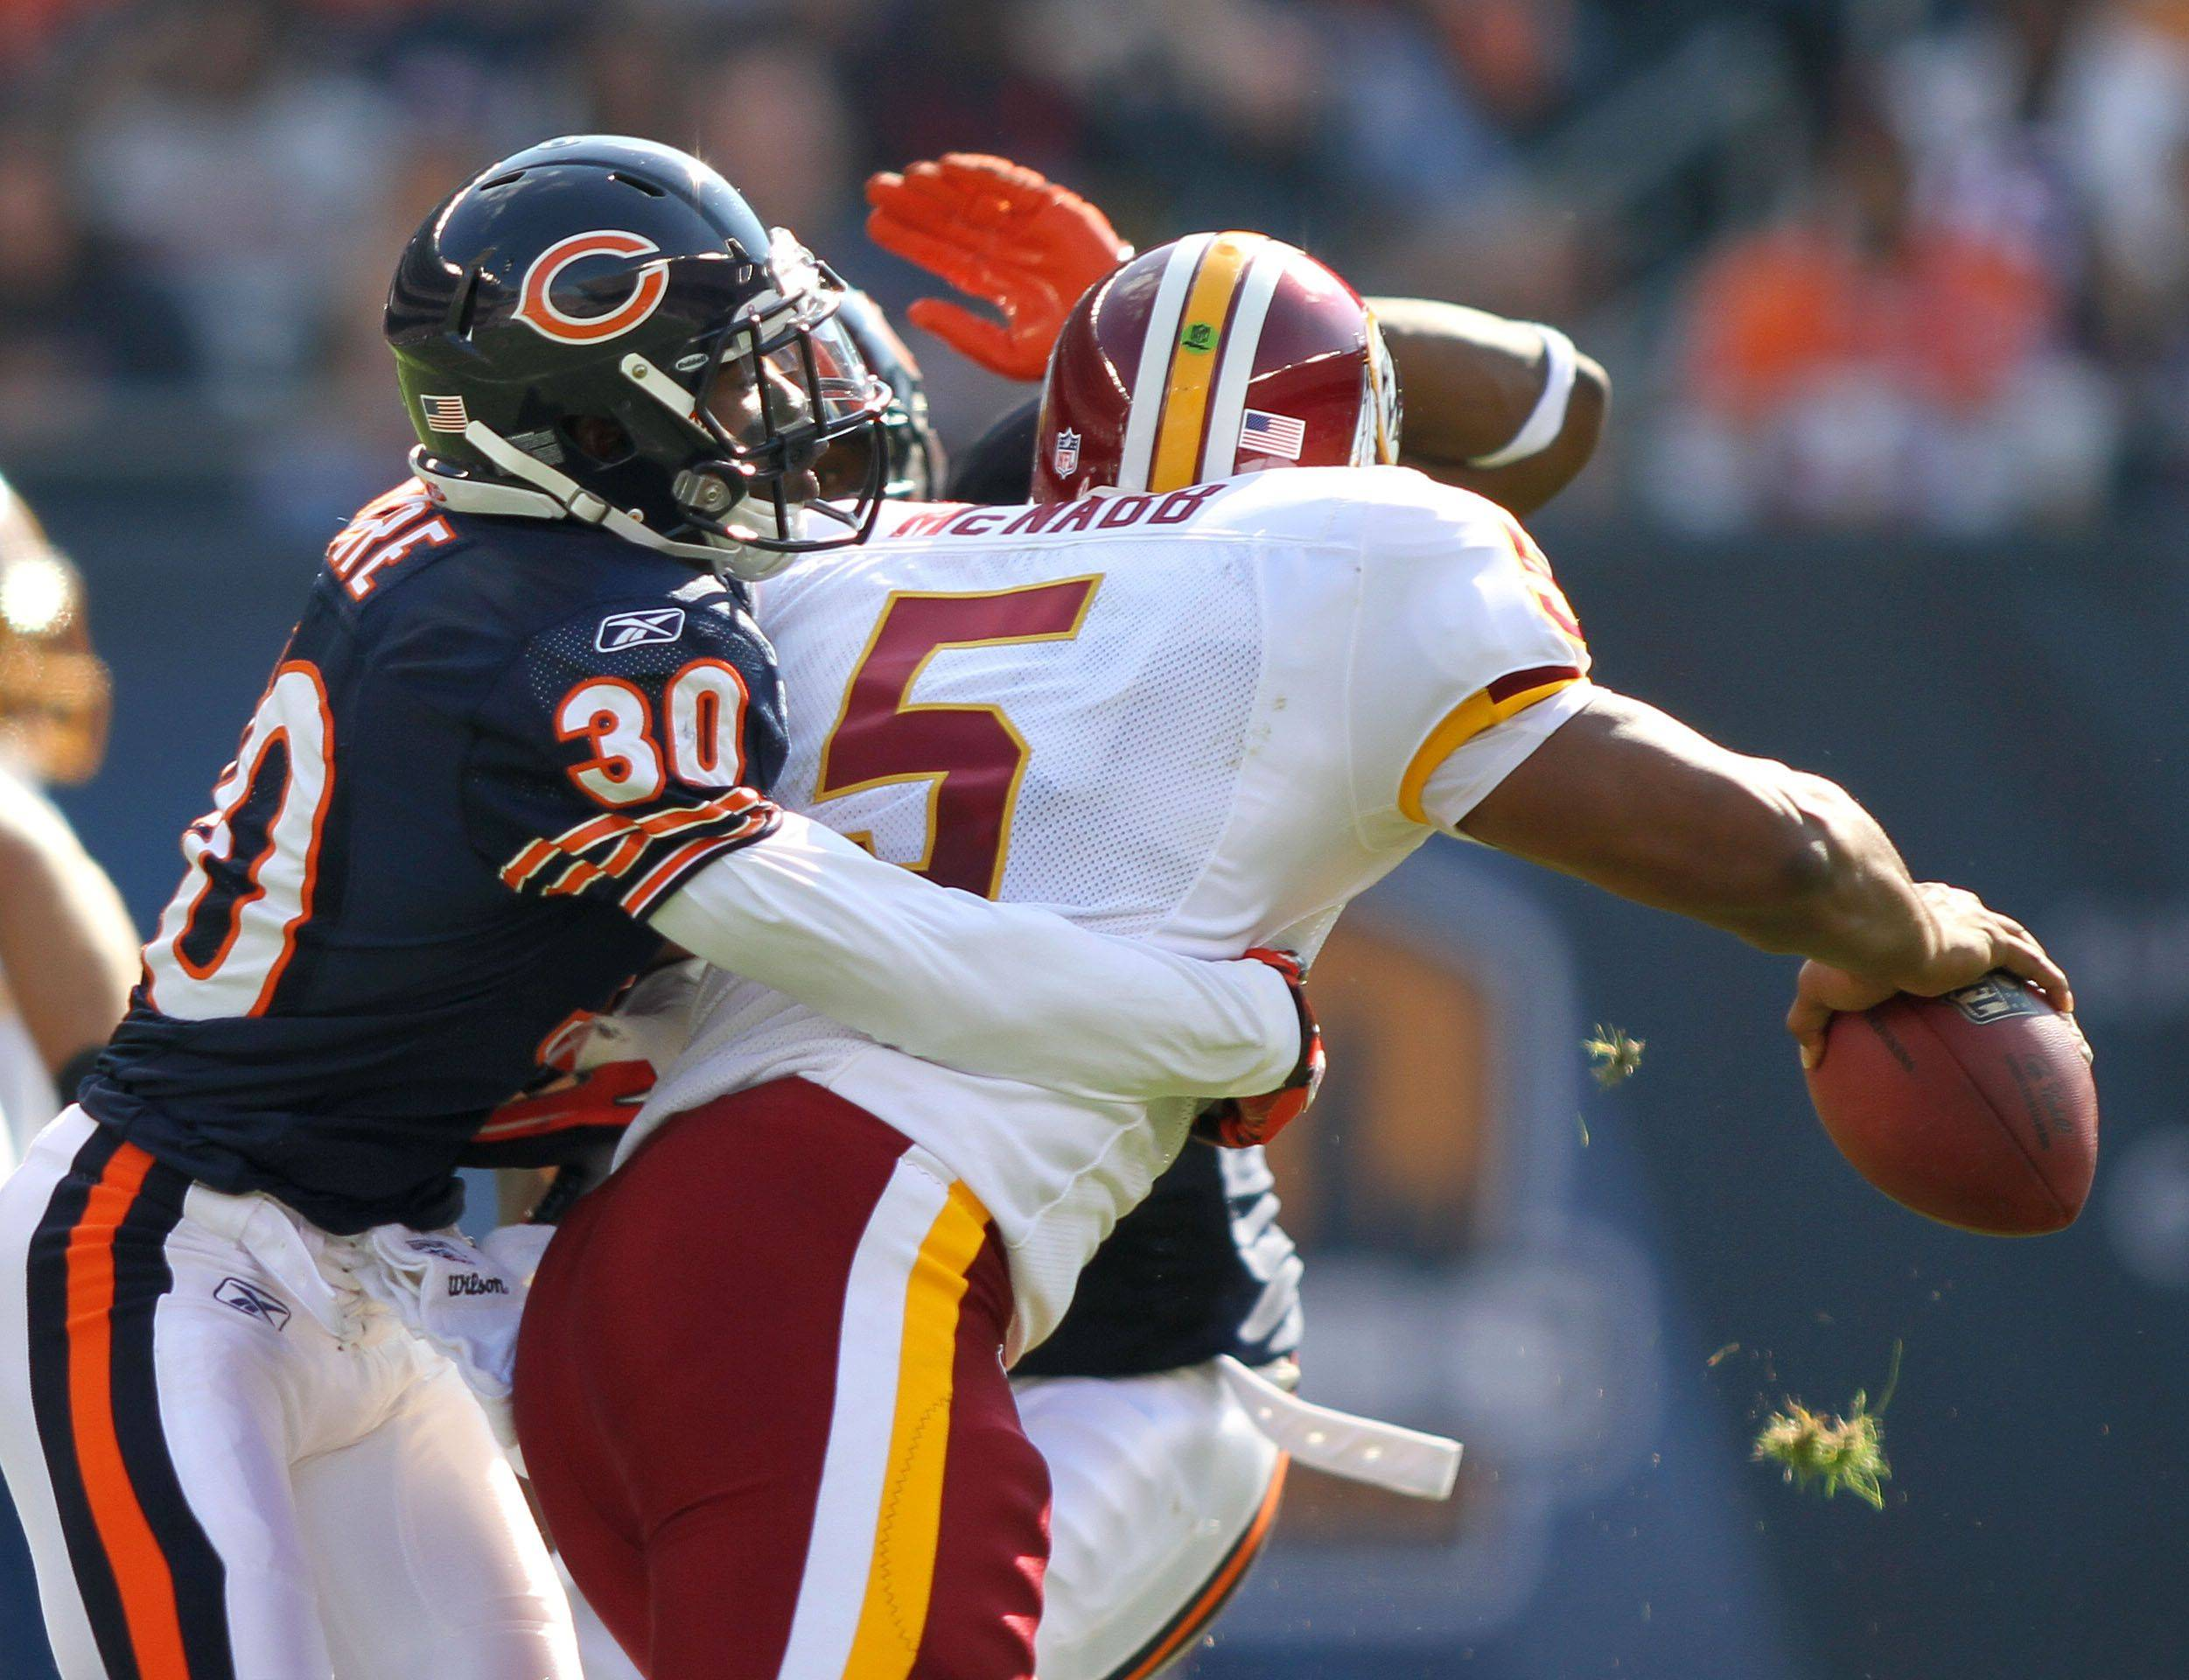 Chicago Bears cornerback D.J. Moore sacks Washington Redskins quarterback Donovan McNabb during the Bears' 14-17 loss to the Redskins.